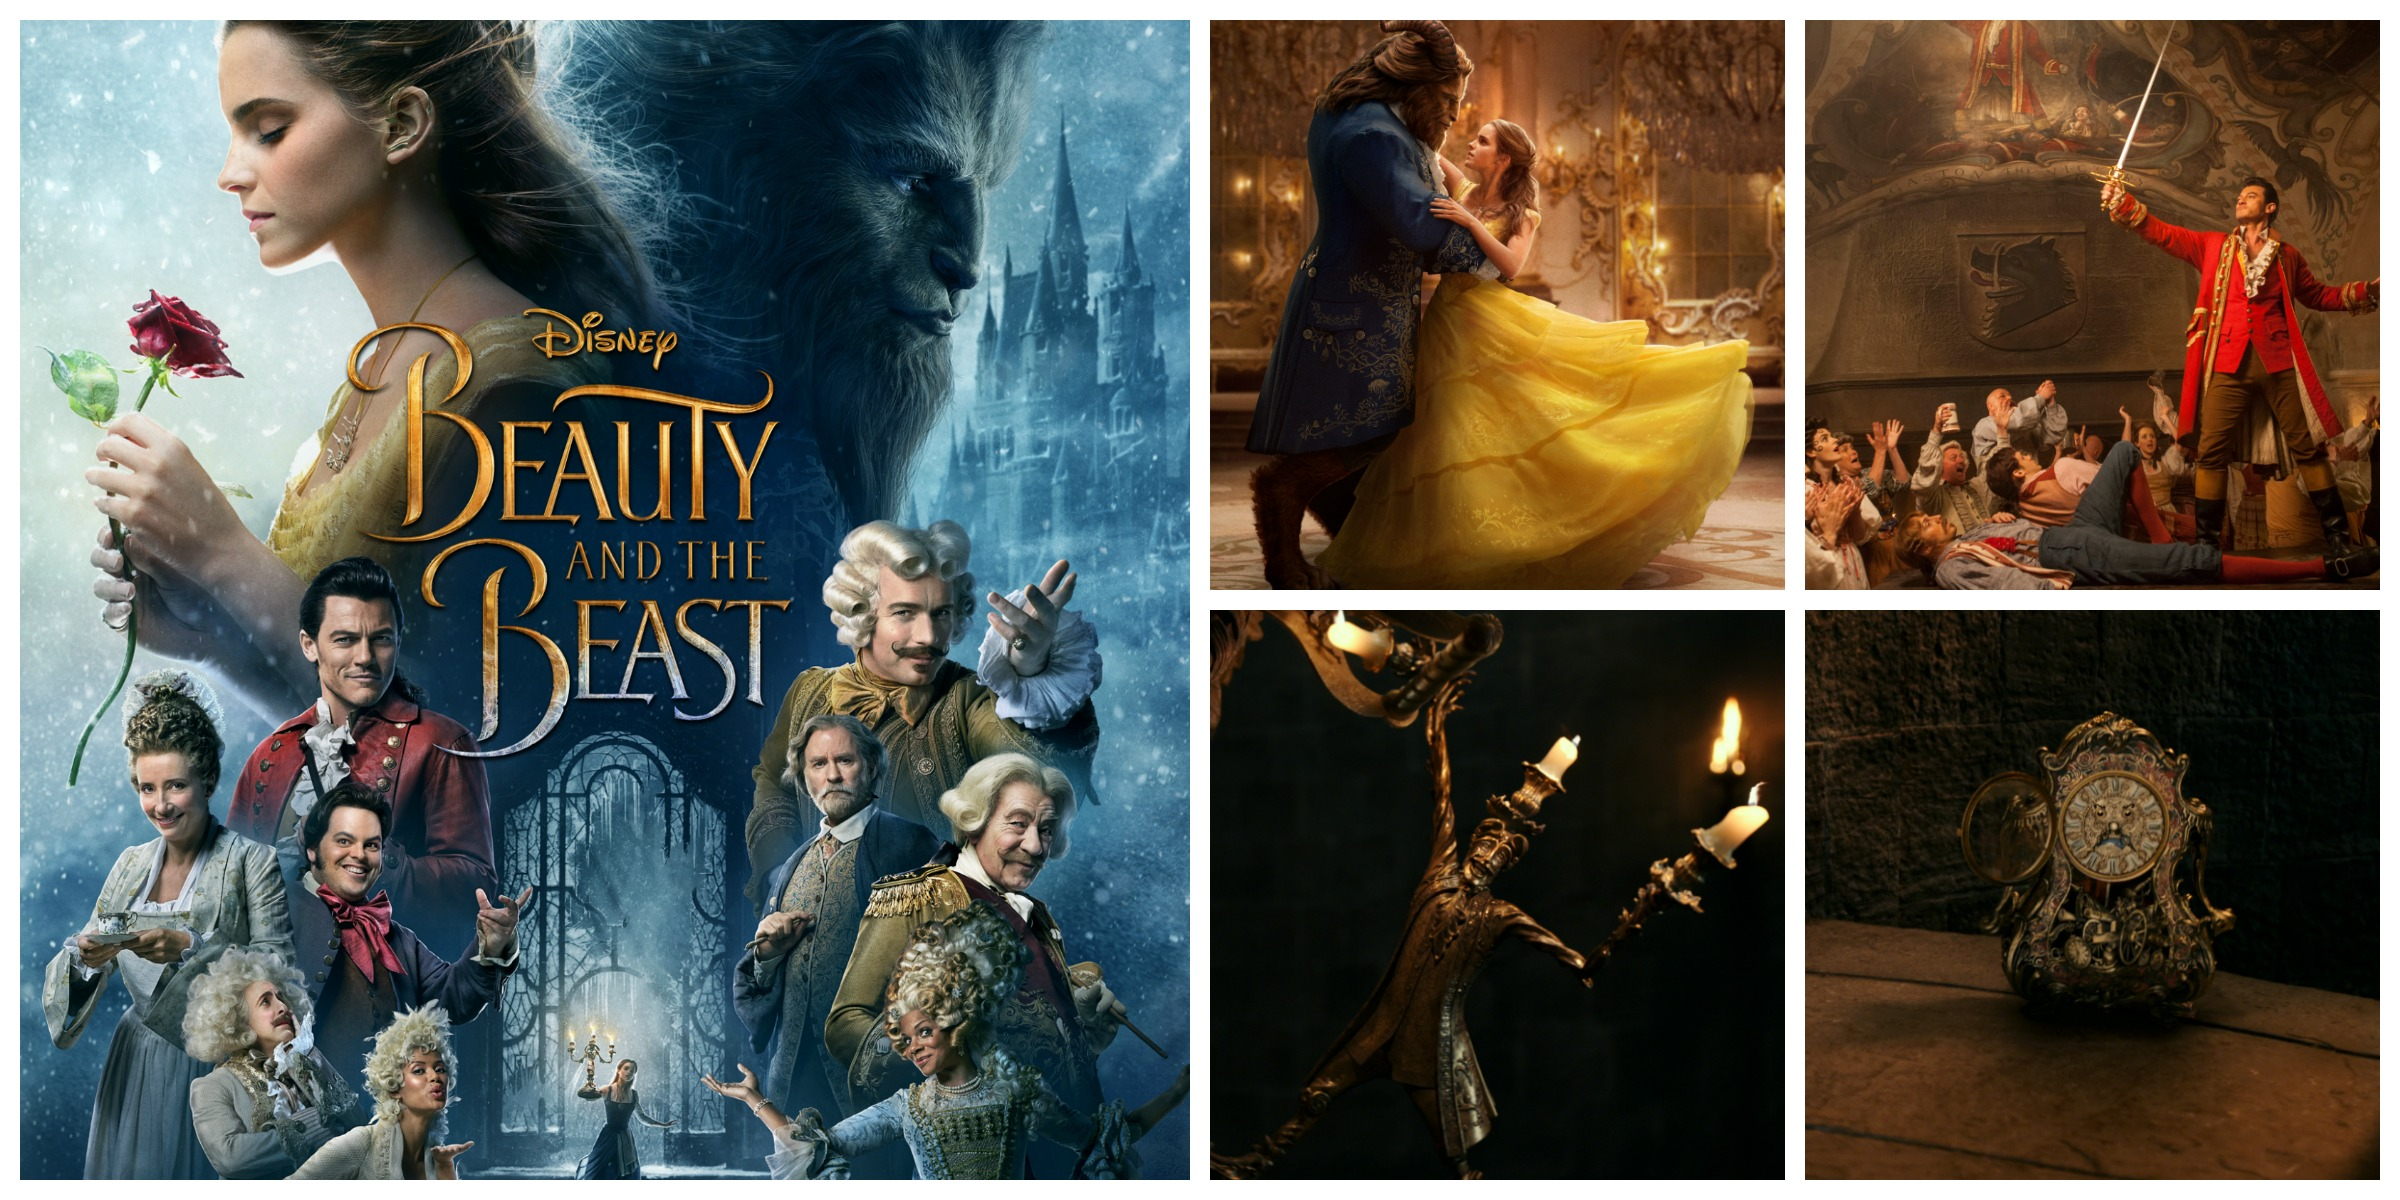 Beauty and The Beast Newest TV Spot - See Emma Watson sing Belle #BeOurGuest  #BeautyAndTheBeast